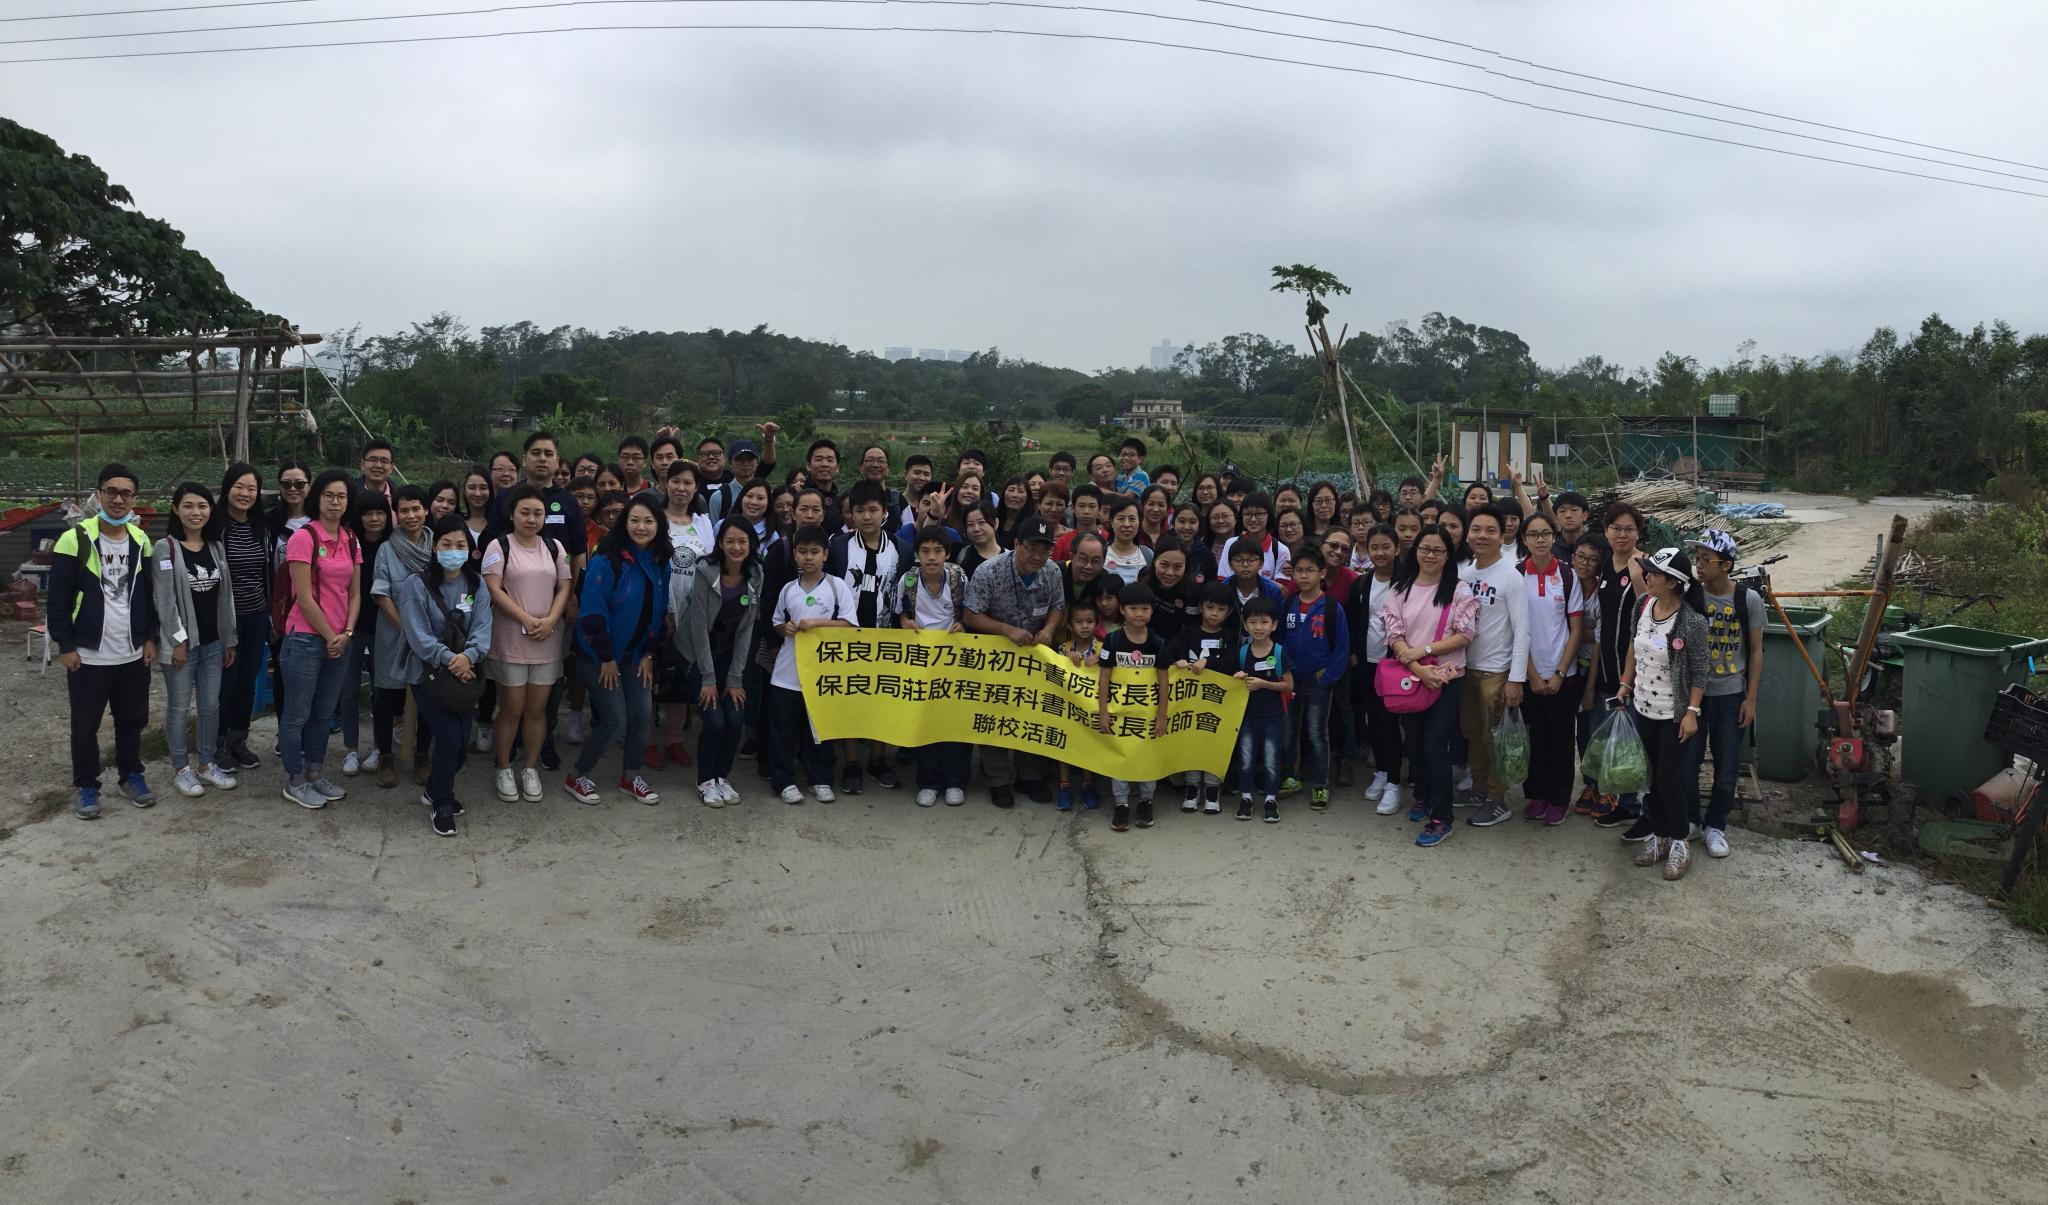 The participants took a picture in front of the Fanling Ping Che Strawberry Farm.